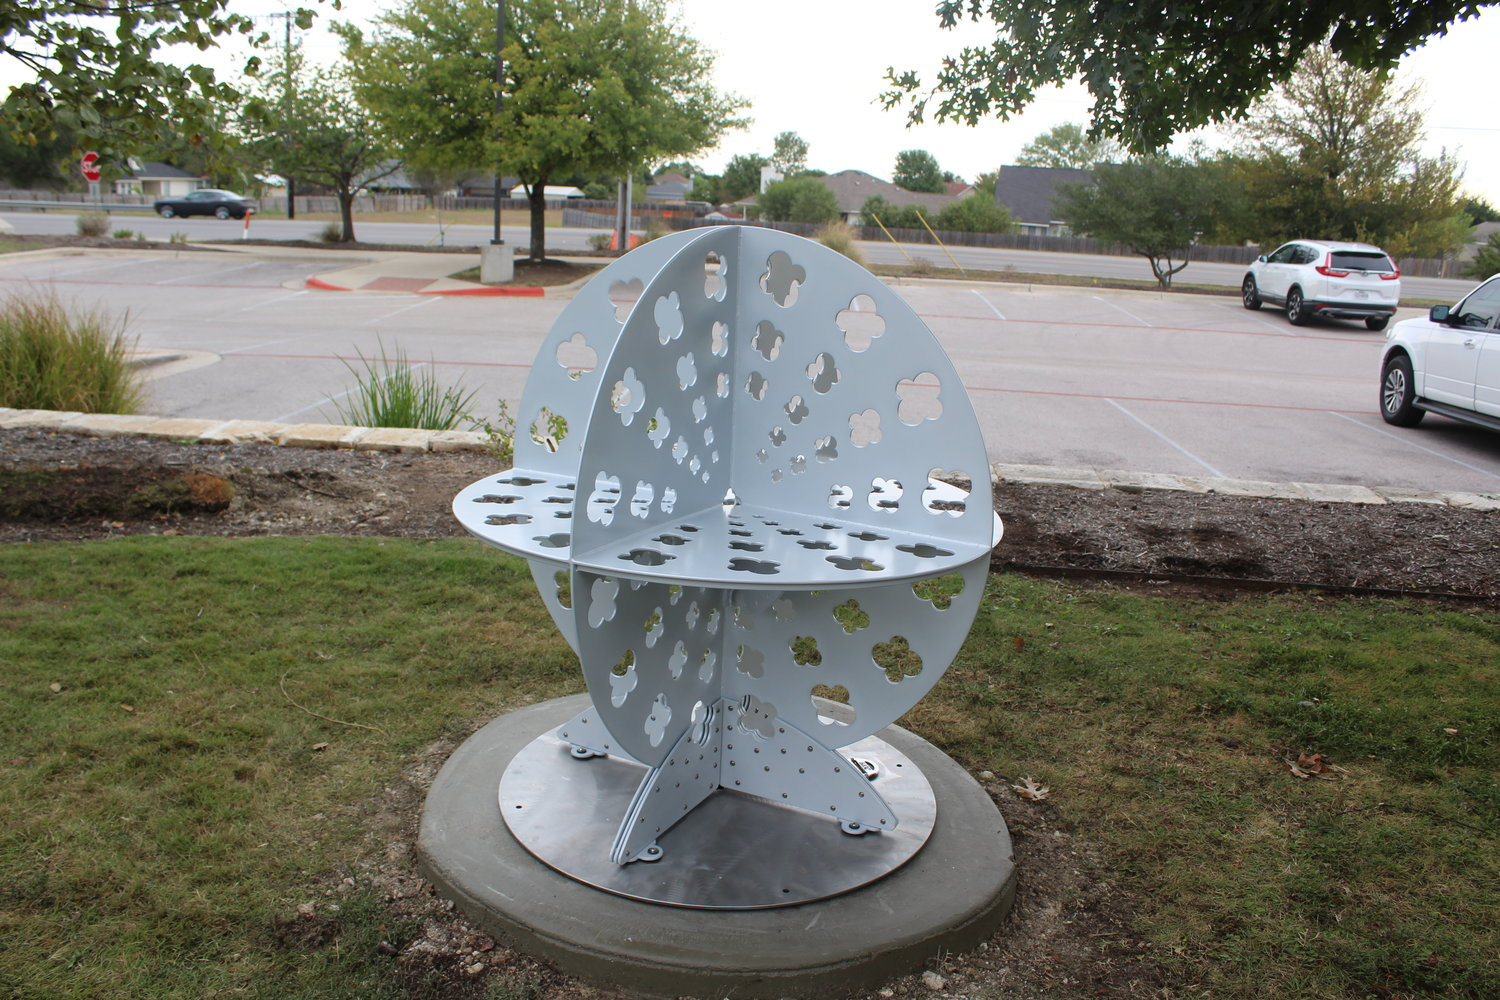 The second art bench resembling a quasar was created by artist Elizabeth Akamatsu was installed Thursday at the Leander Public Library.